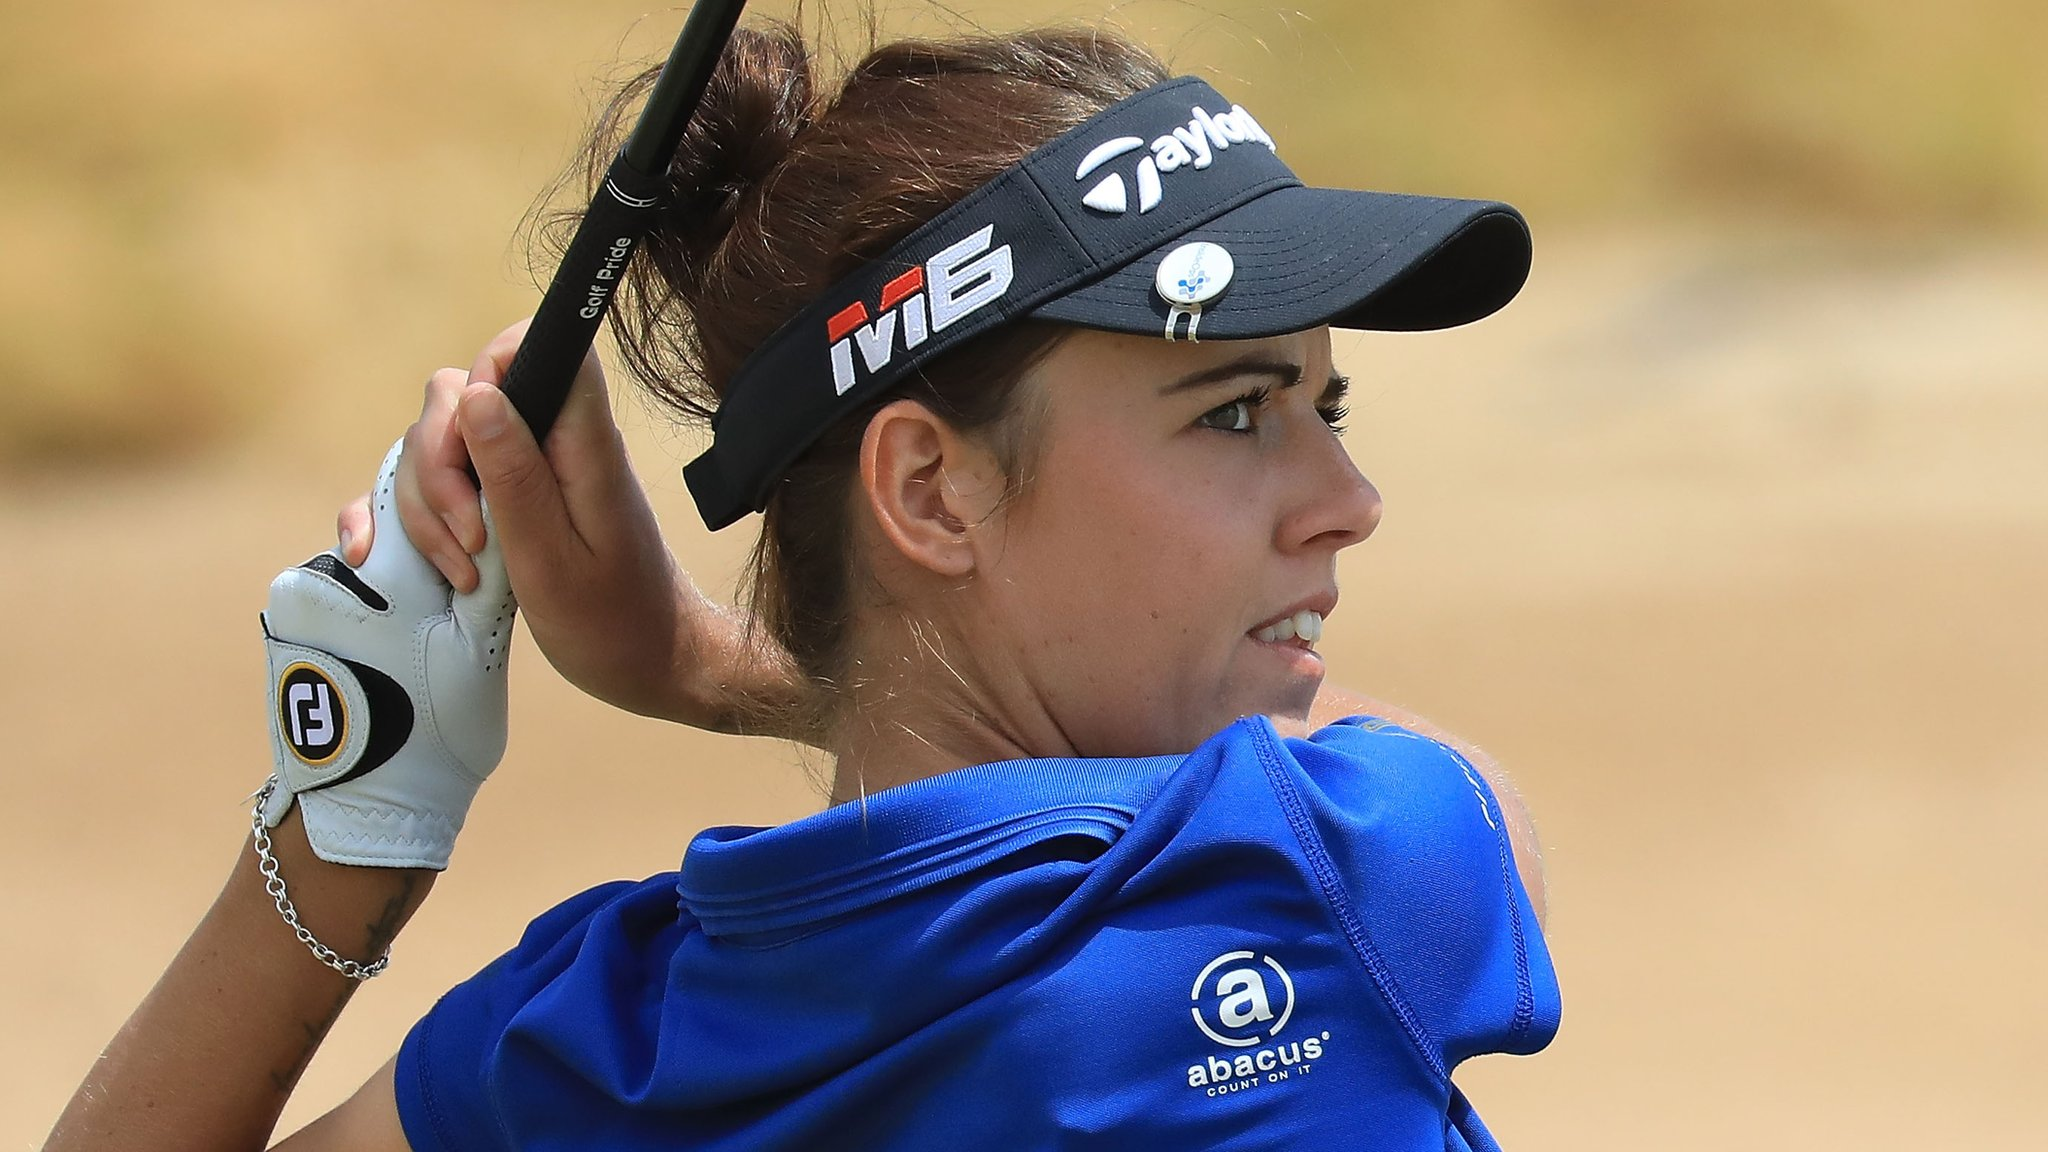 Lalla Meryem Cup: Meghan MacLaren aims to top Ladies European Tour Order of Merit